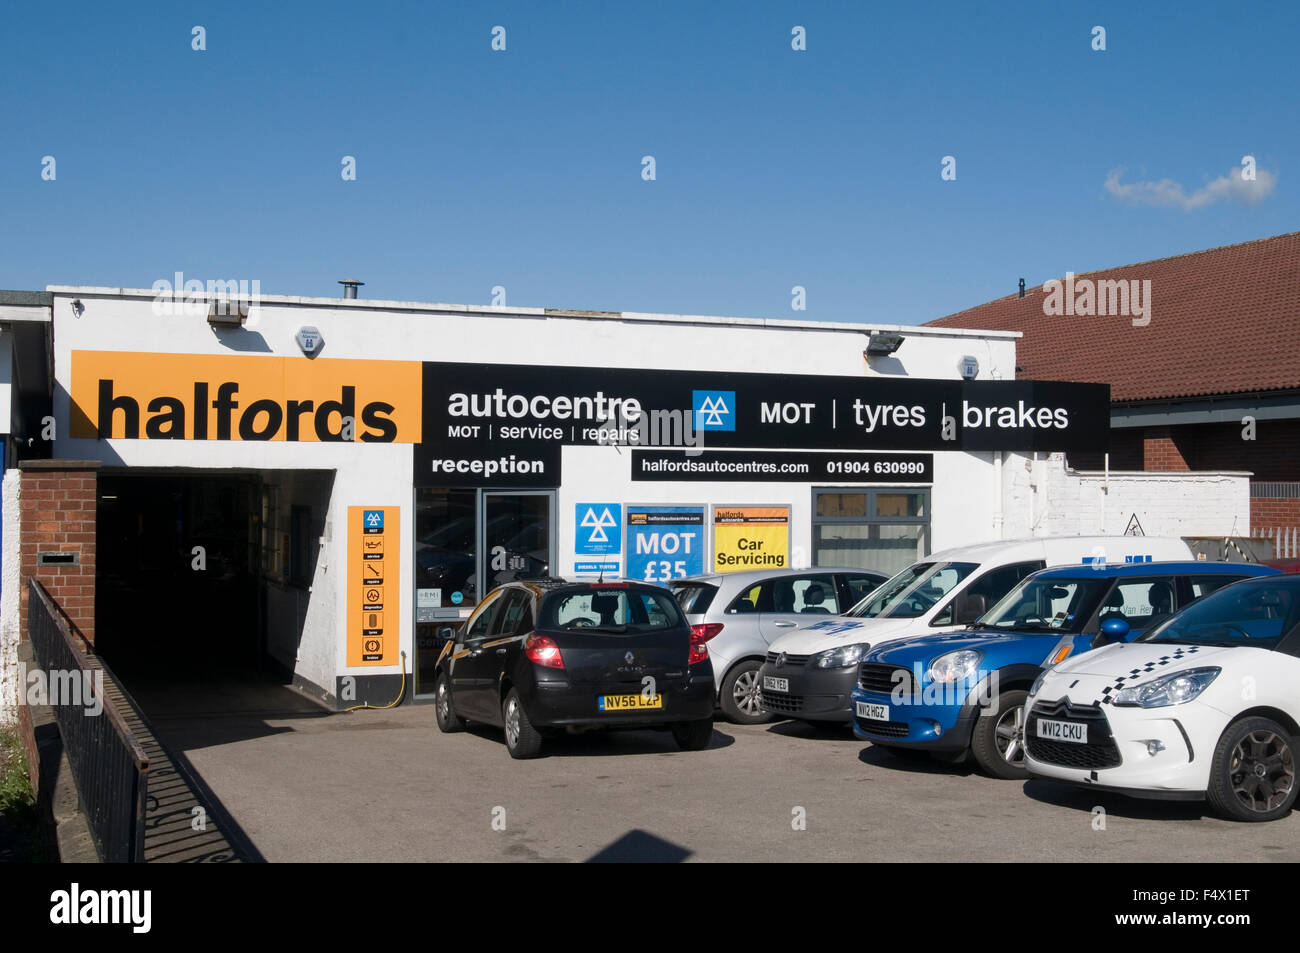 Autocentre car service detailing carsale kent me qs for Garage reparation auto